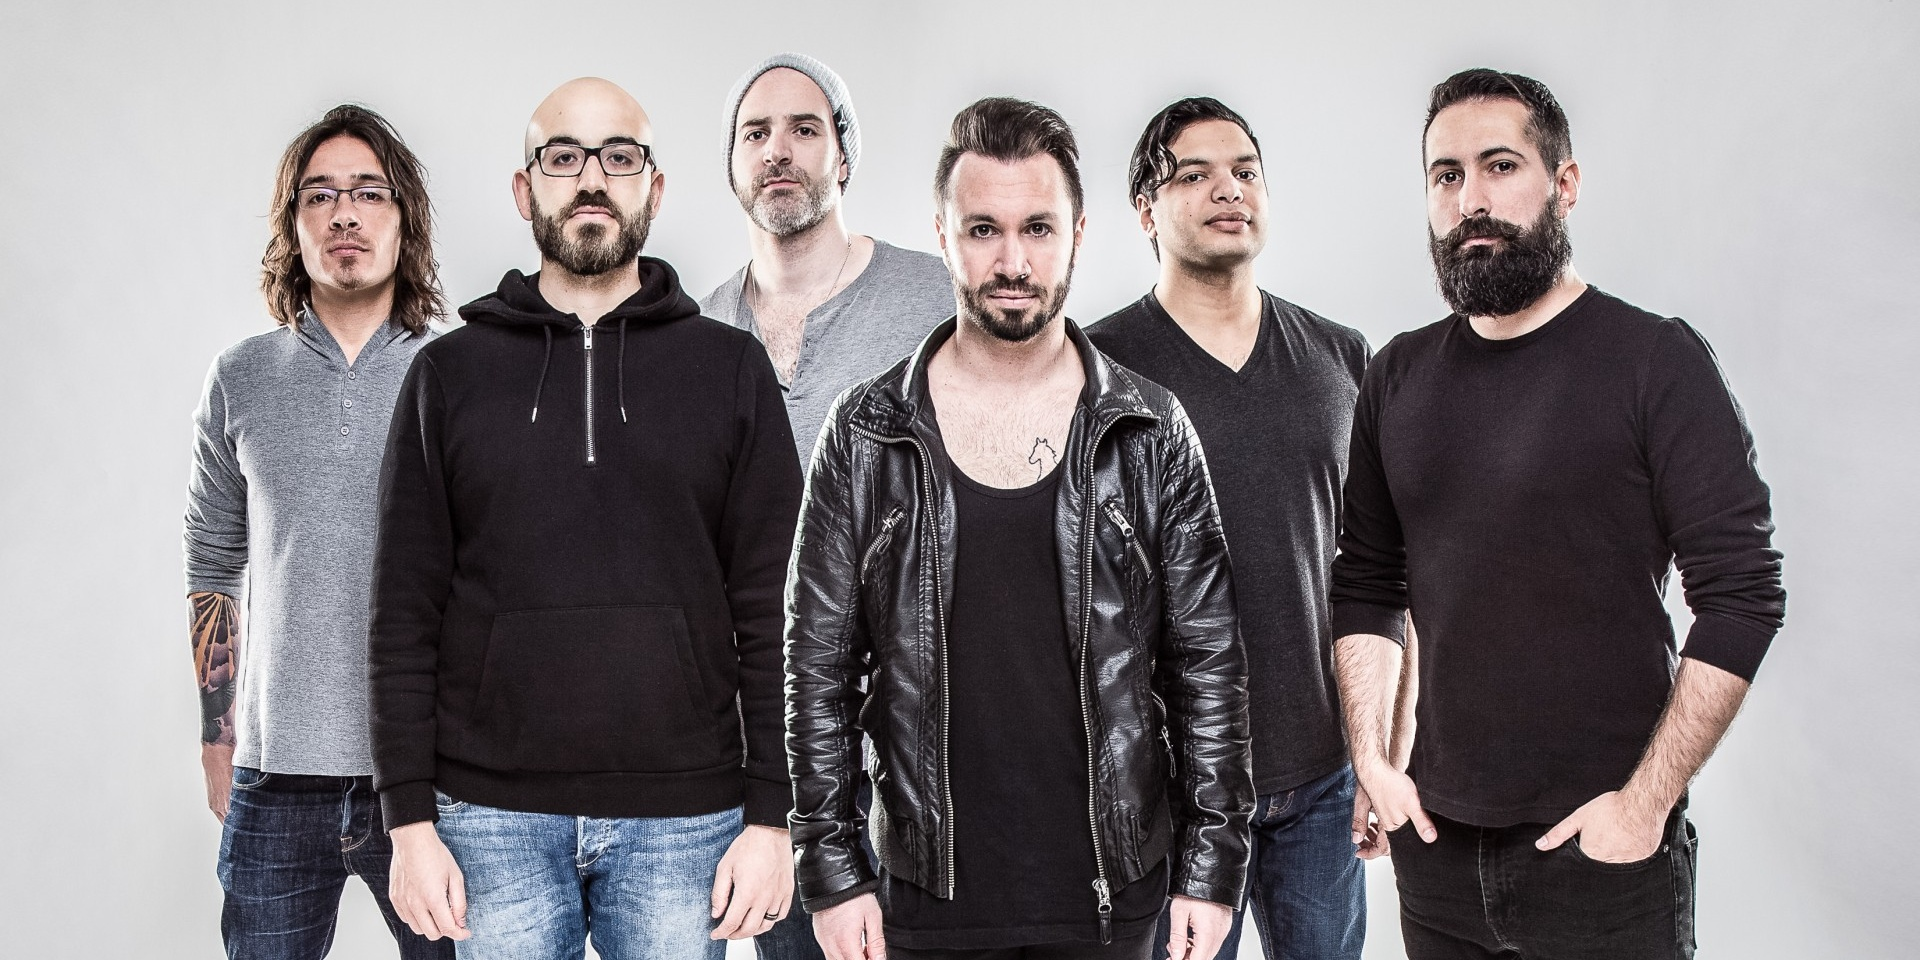 Prog metal giants Periphery to make Singapore debut